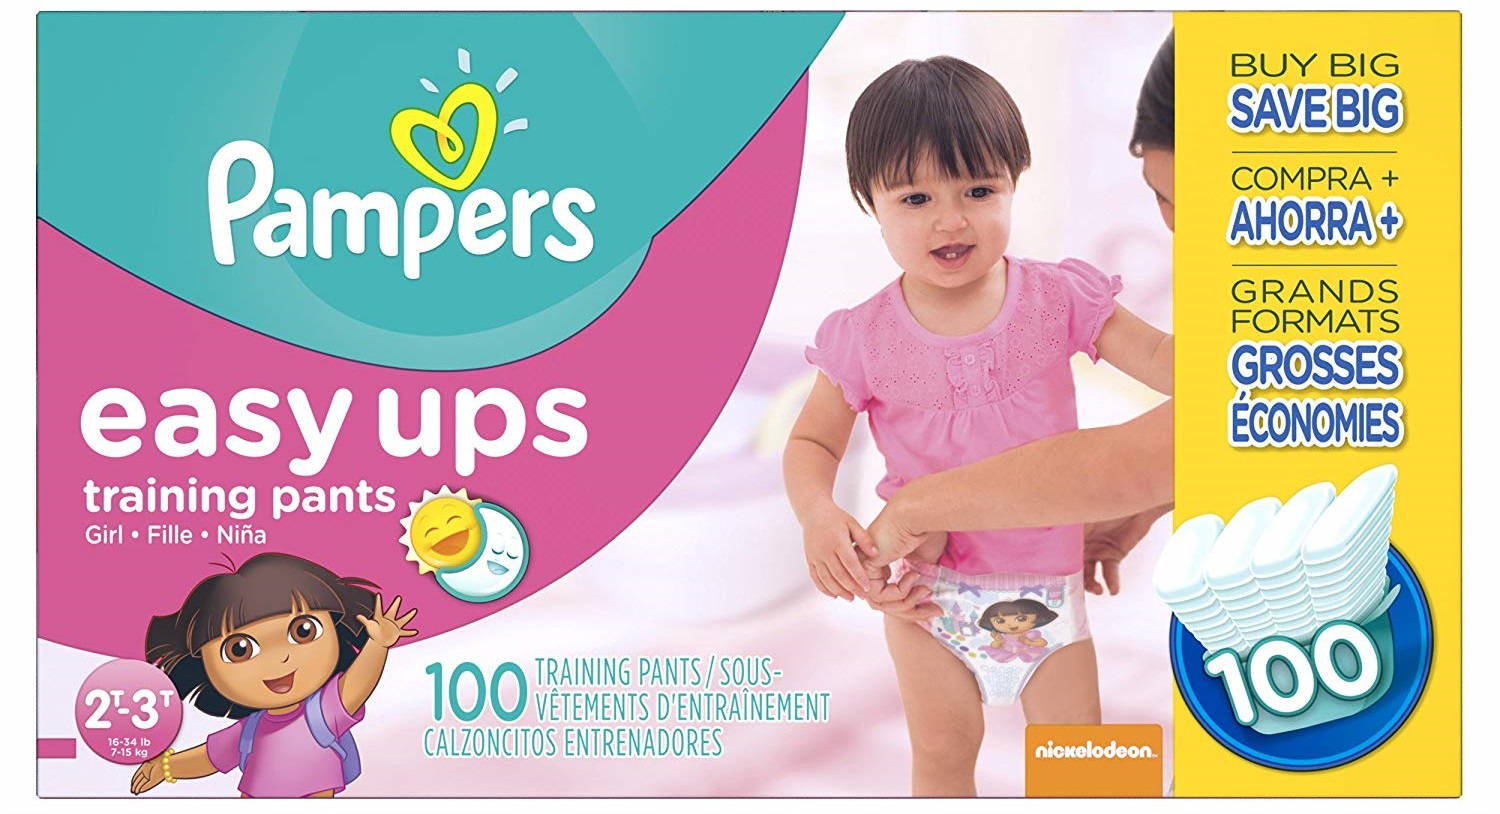 A Complete Review of Pampers Pam 2766 Easy Ups Training Pants, 2T3T (Size 4), (Pack of 100) Diapers for Girls